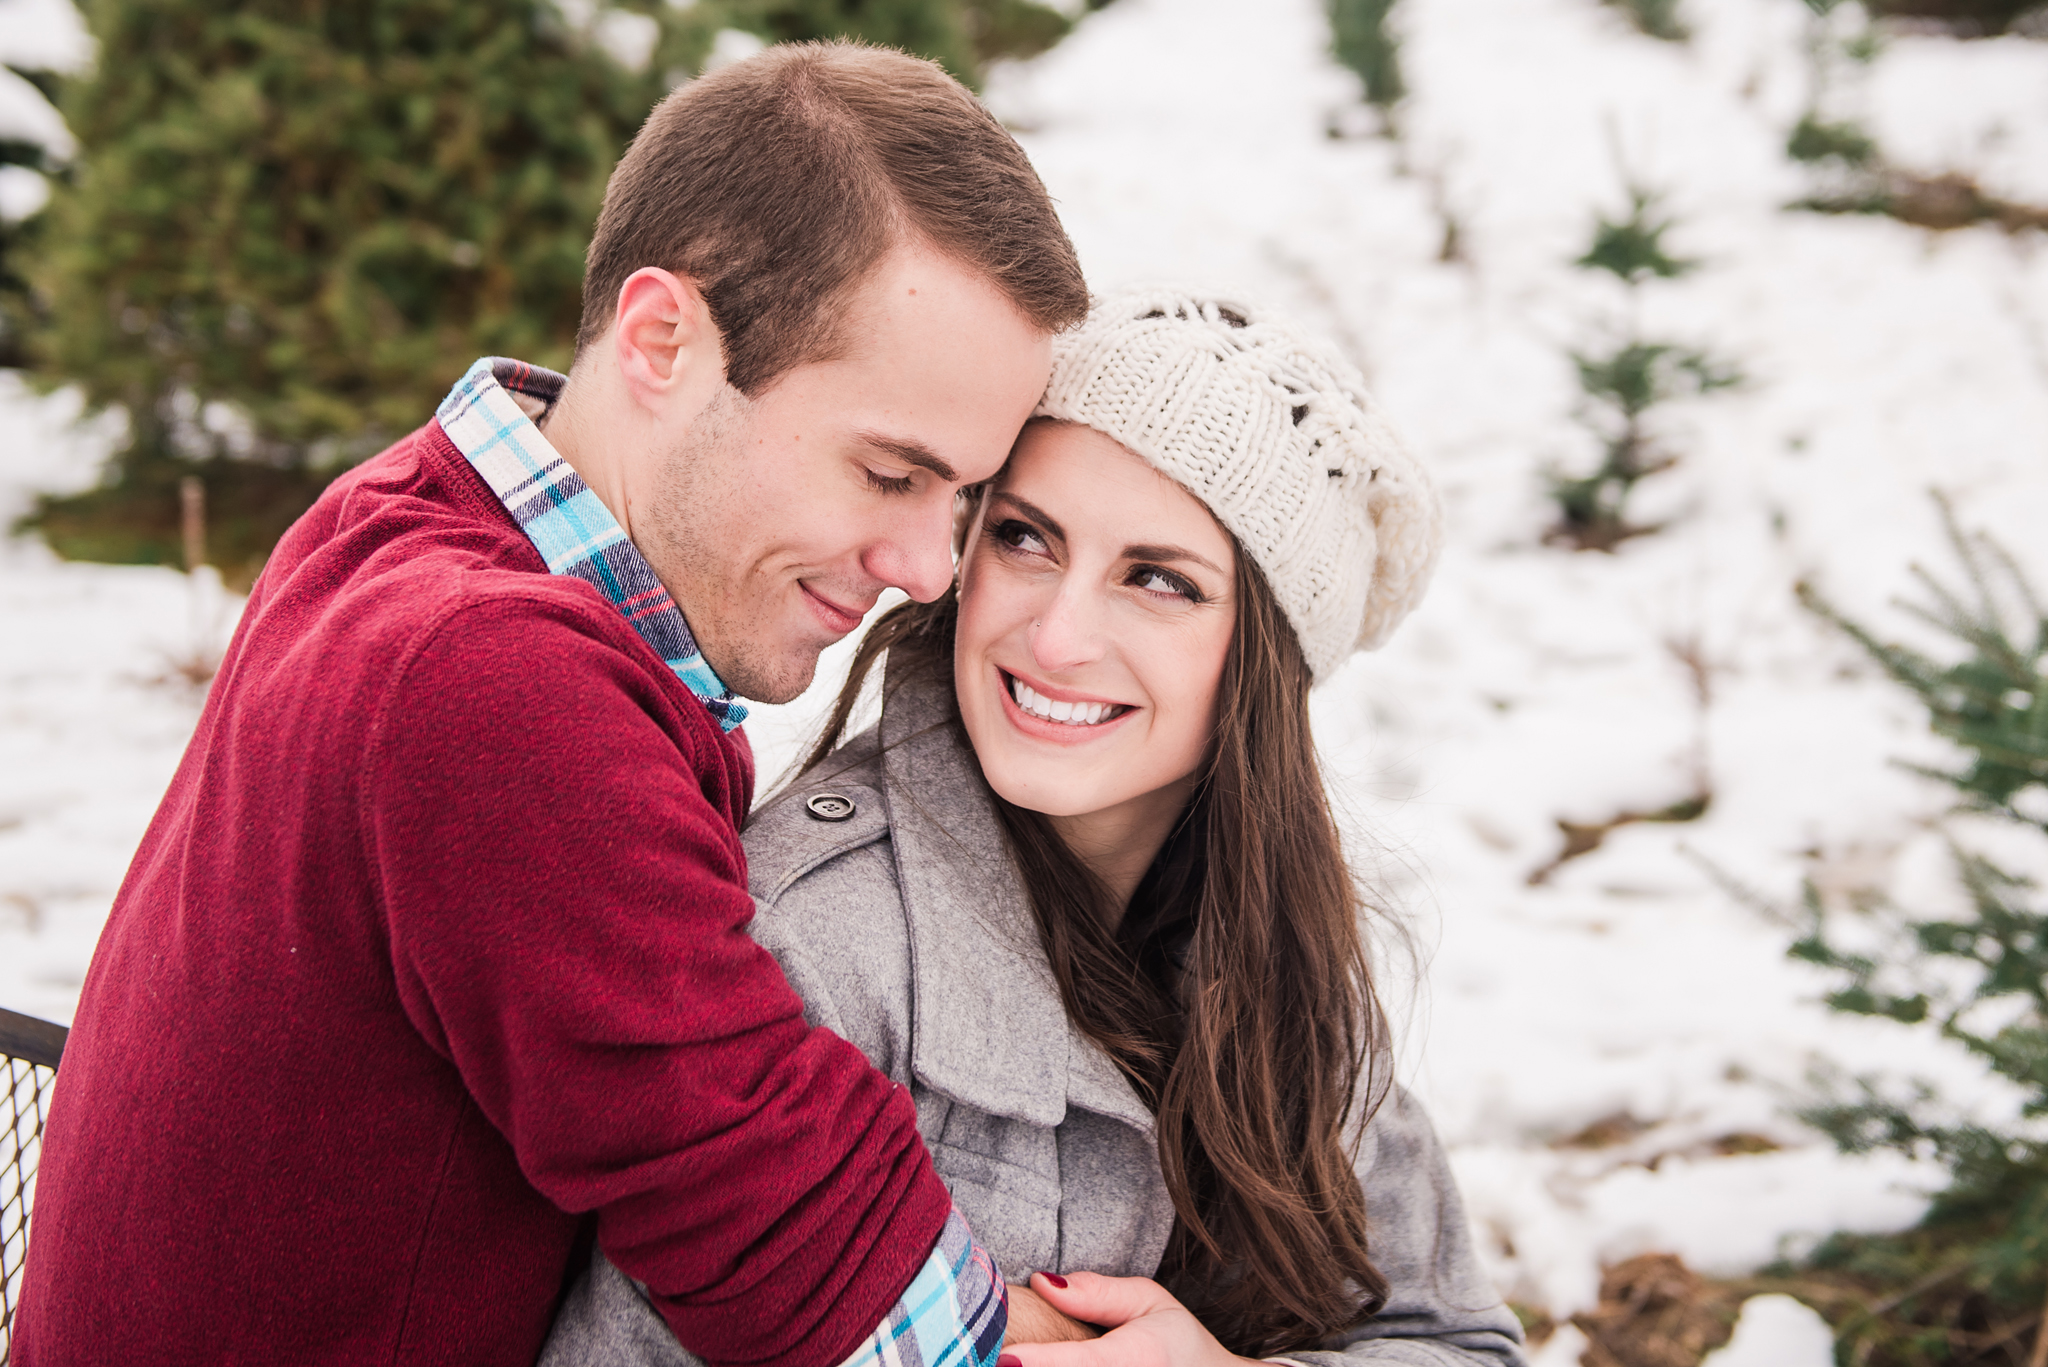 Woody_Acres_Rochester_Engagement_Session_JILL_STUDIO_Rochester_NY_Photographer_154306.jpg